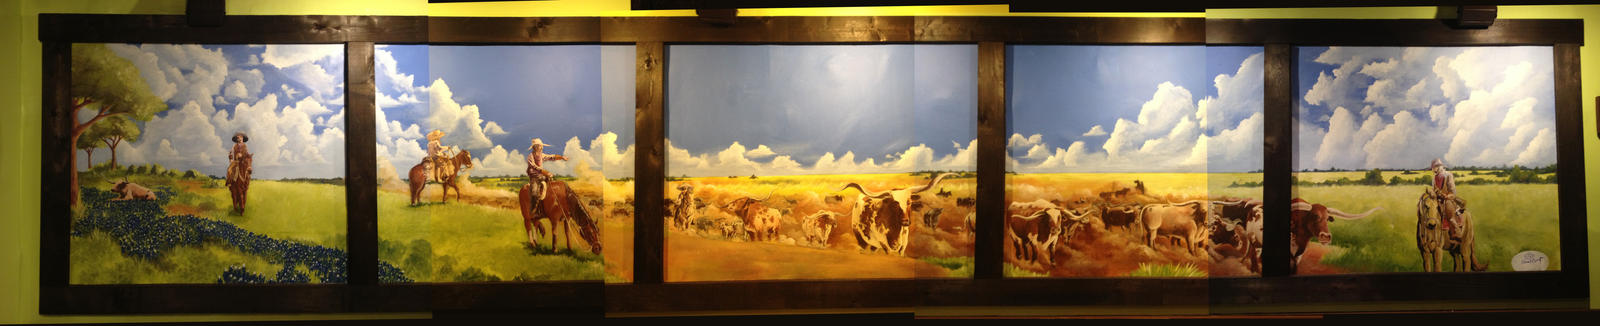 La Hacienda Ranch-Preston Trail Mural by acarabet